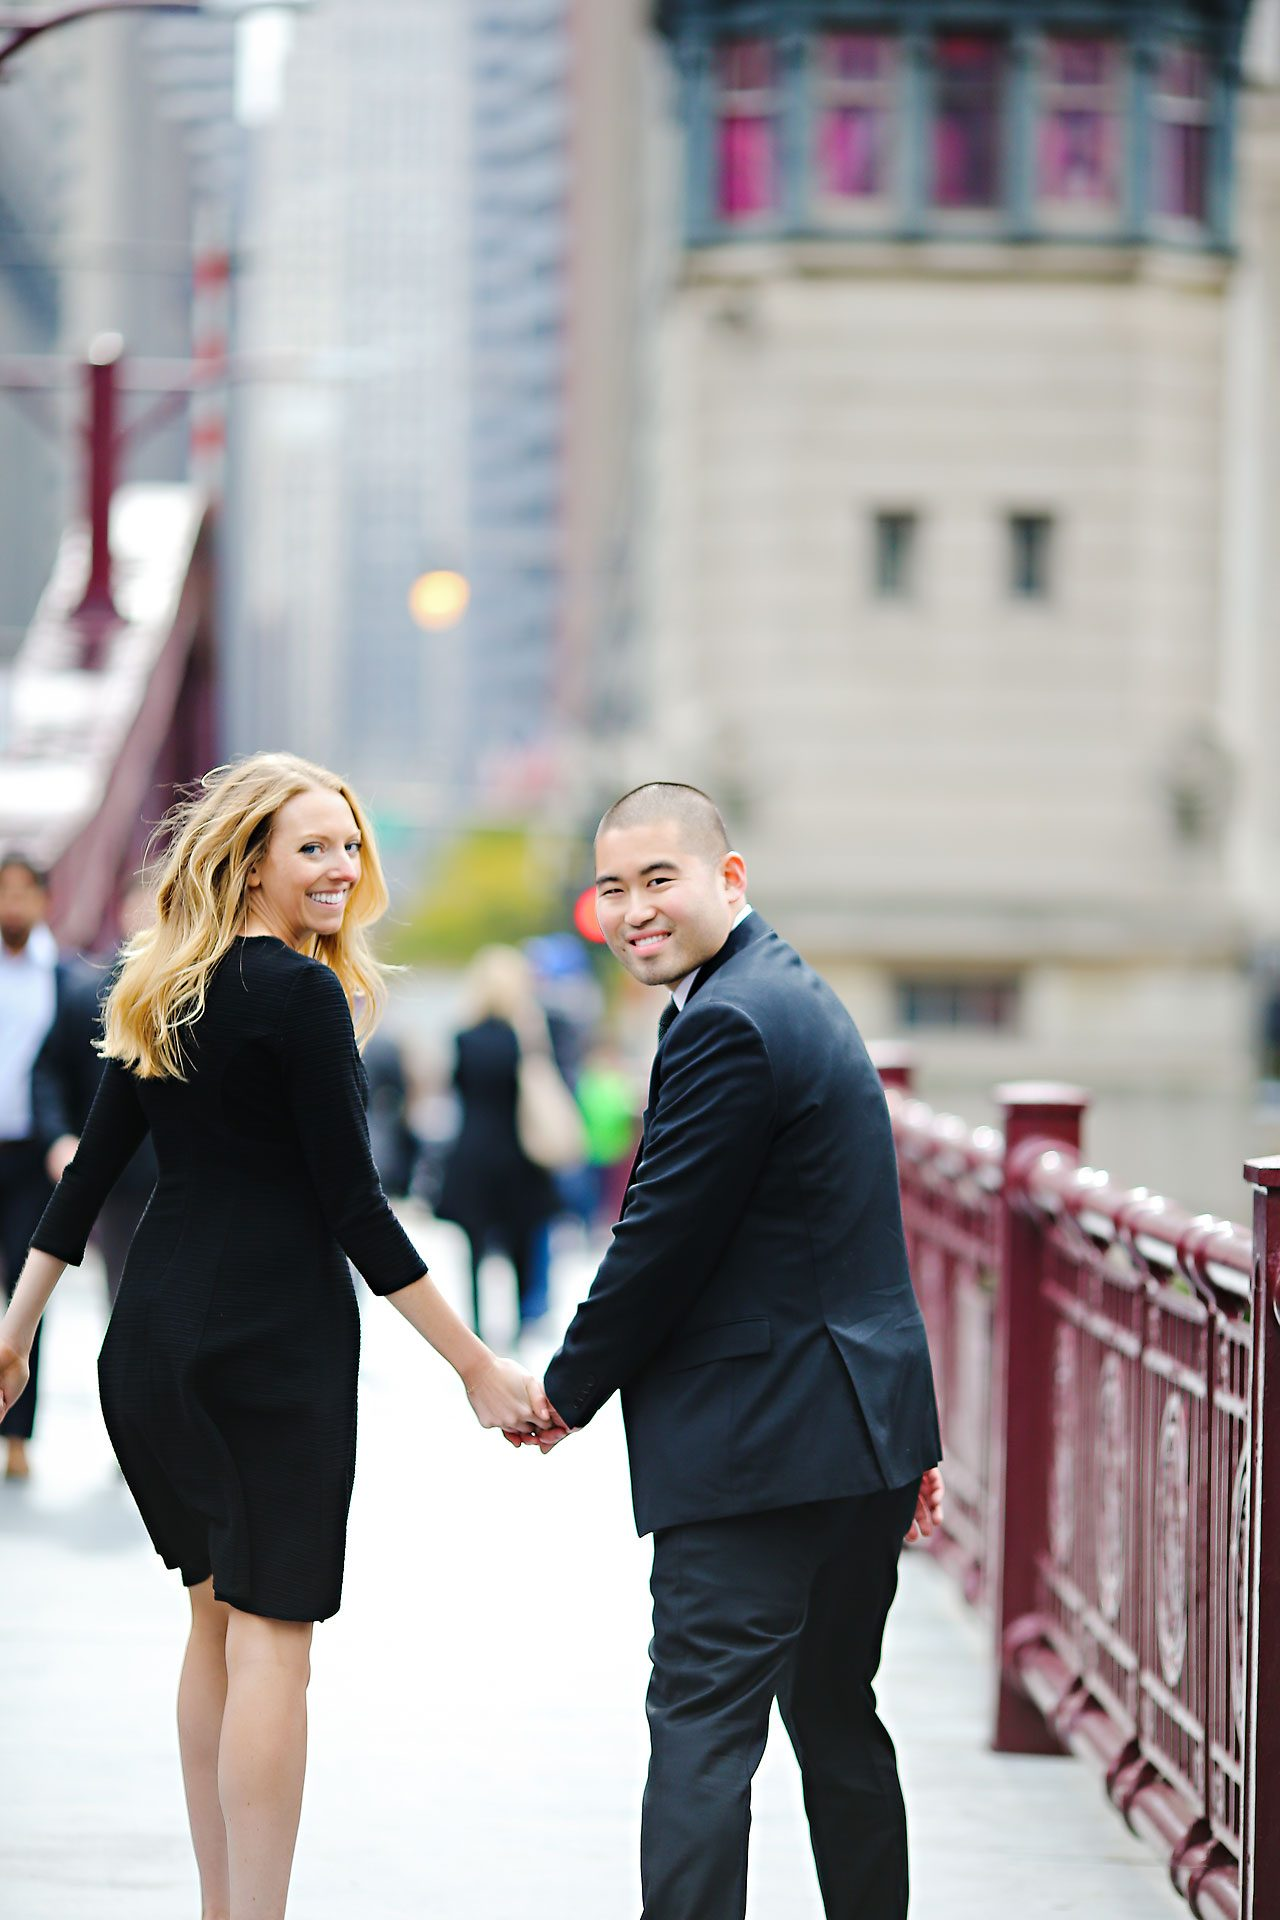 mallory wayne chicago engagement session 058